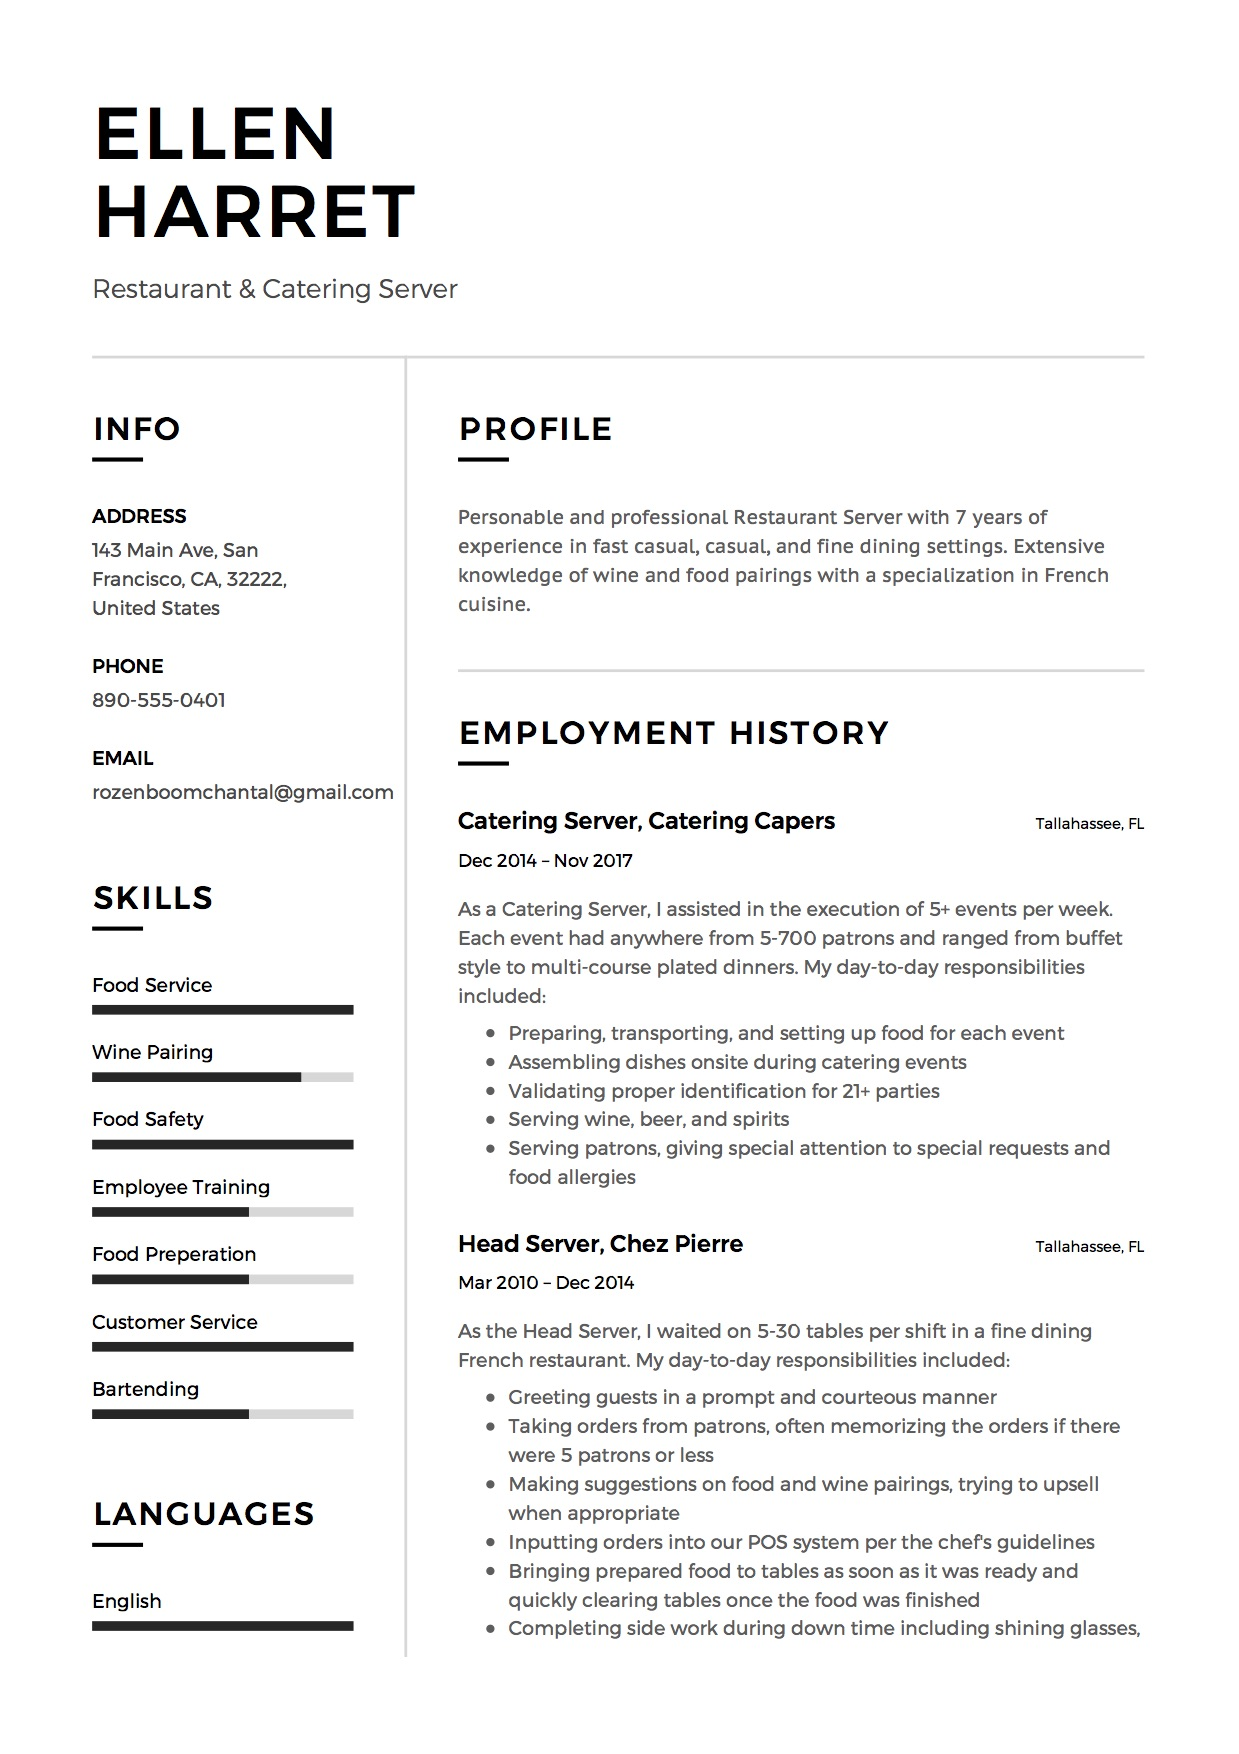 Restaurant Server Resume Sample | 12 Creative Resume Examples 2018